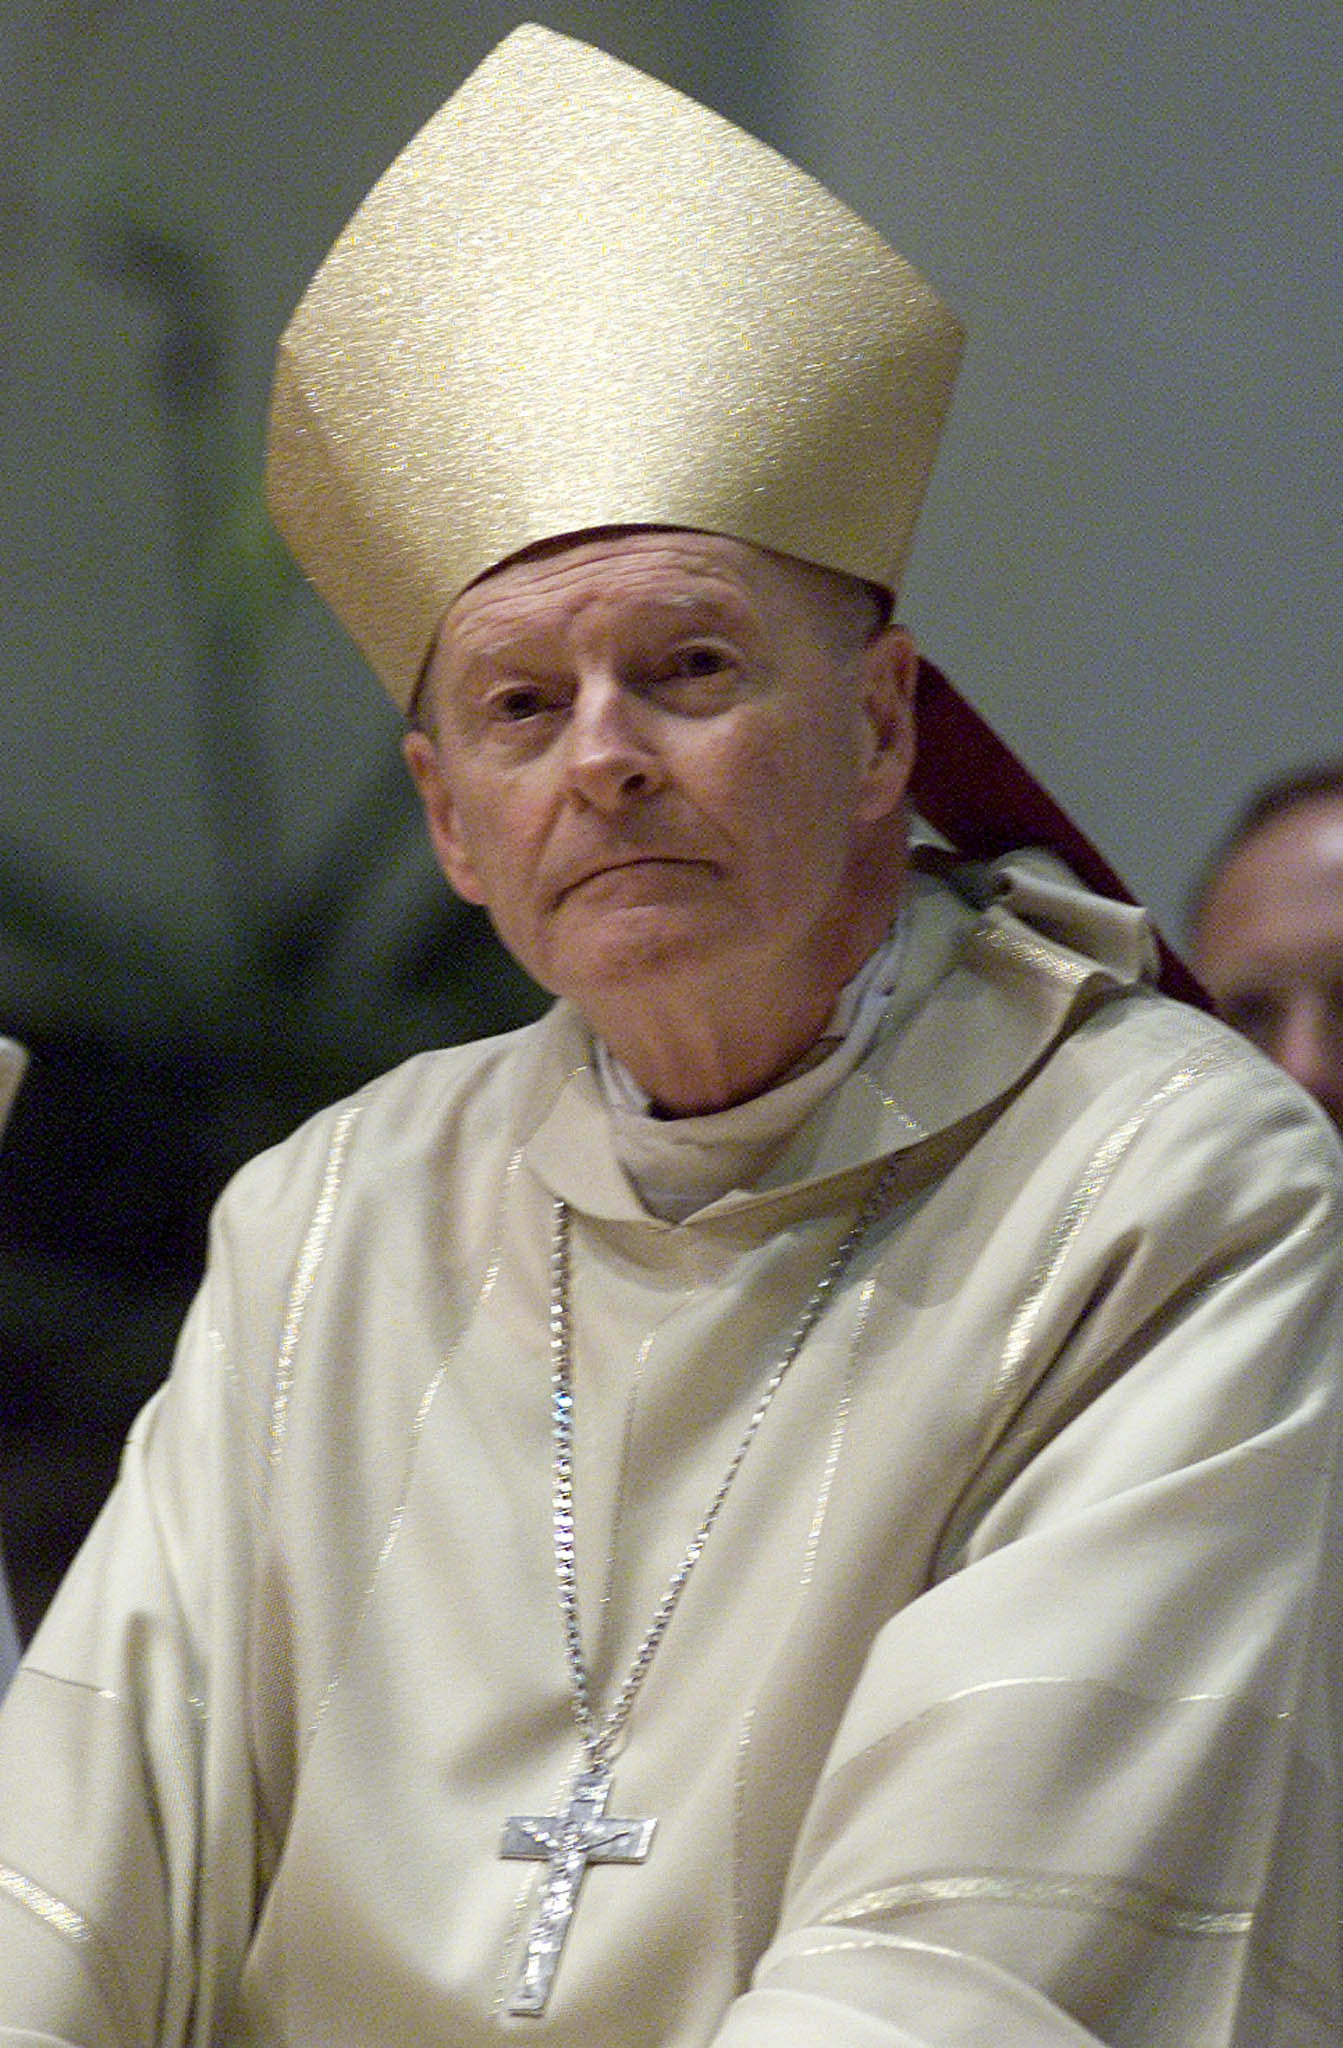 Pope accepts cardinal mccarricks resignation as cardinal todays pope francis has accepted the resignation from the college of cardinals of cardinal theodore e mccarrick retired archbishop of washington and has ordered m4hsunfo